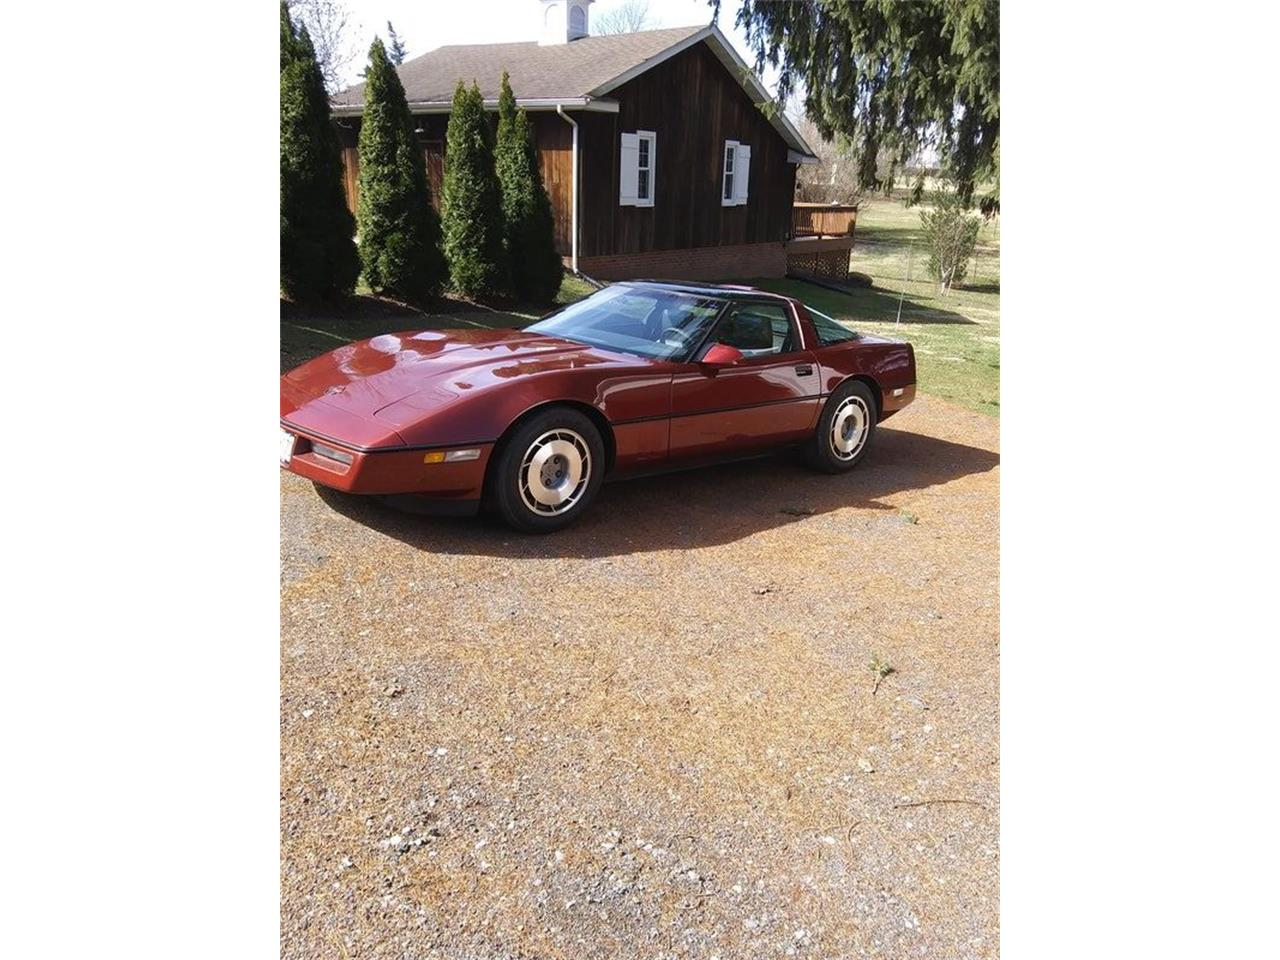 Large Picture of 1987 Corvette located in West Pittston Pennsylvania - $10,000.00 Offered by Auto Market King LLC - PR16